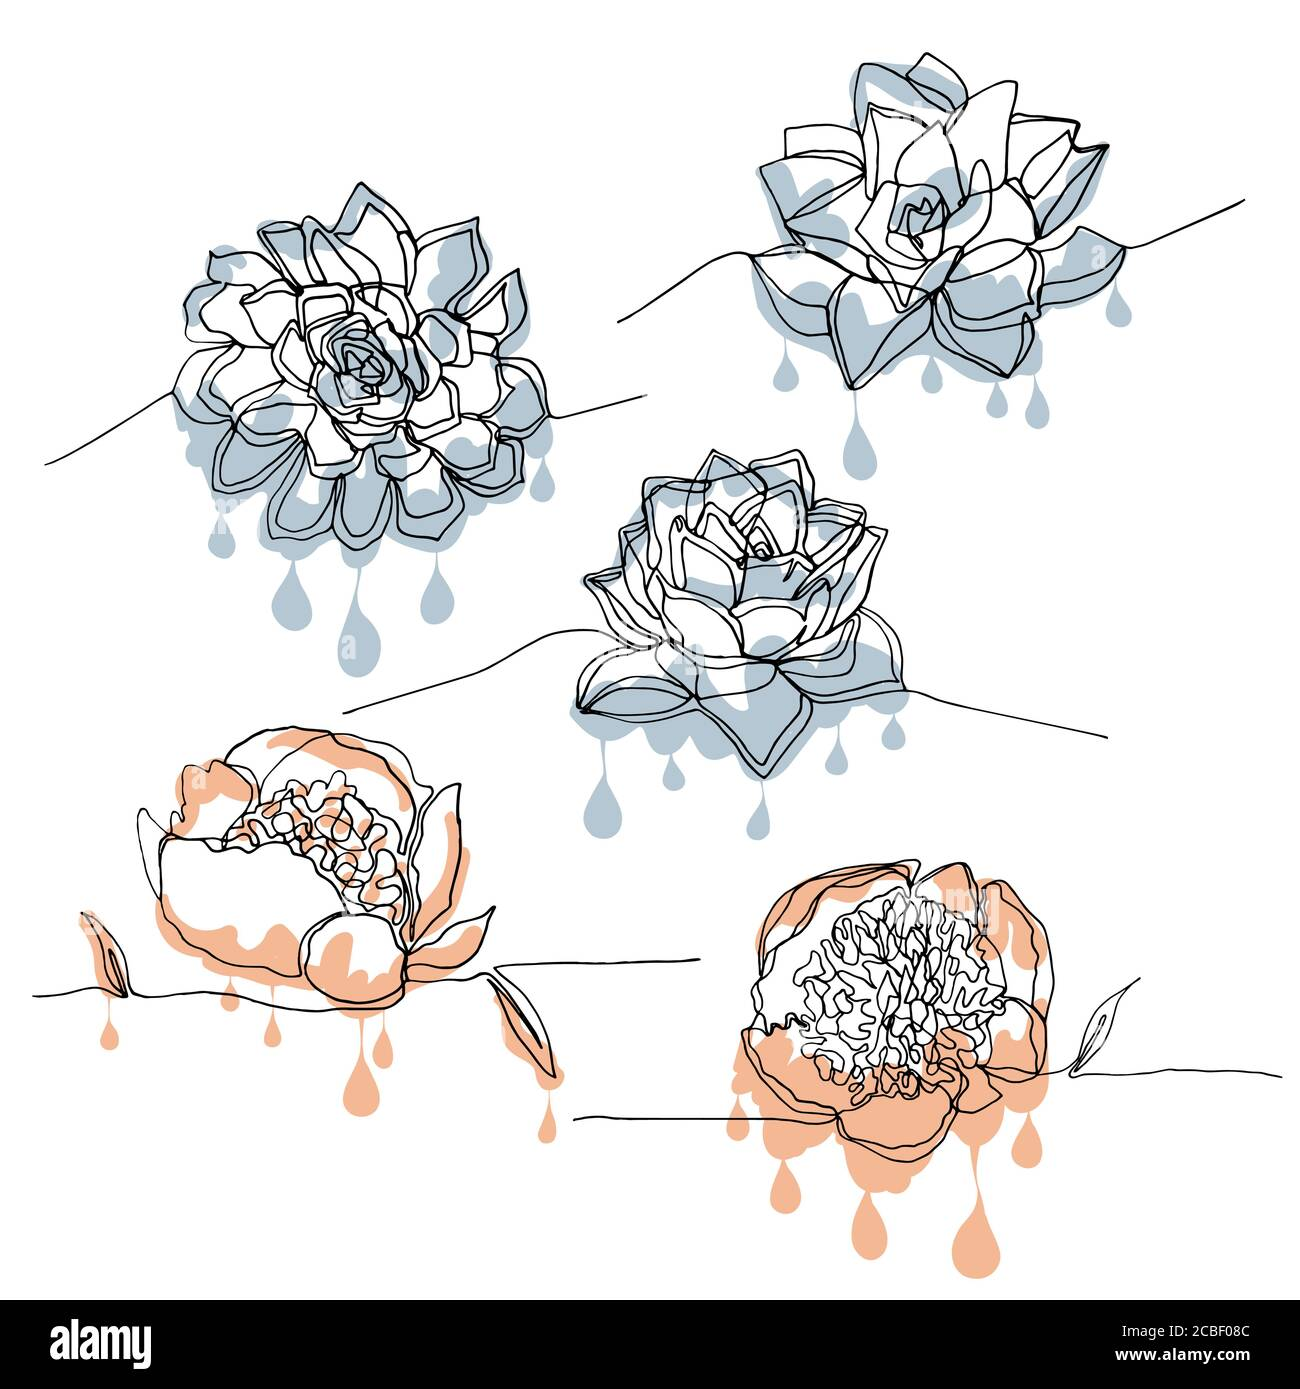 Hand Drawn One Line Drawing Succulent Clipart Floral Design Element Isolated On White Background Vector Stock Vector Image Art Alamy